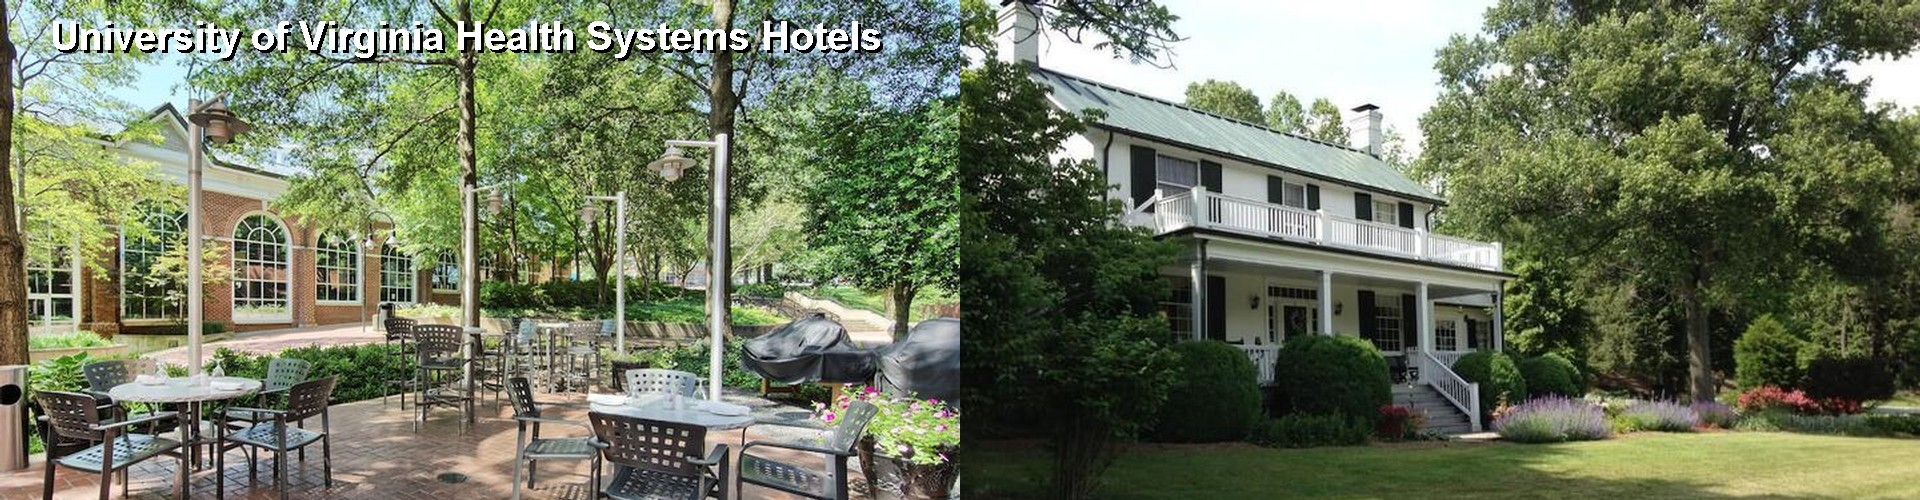 5 Best Hotels near University of Virginia Health Systems